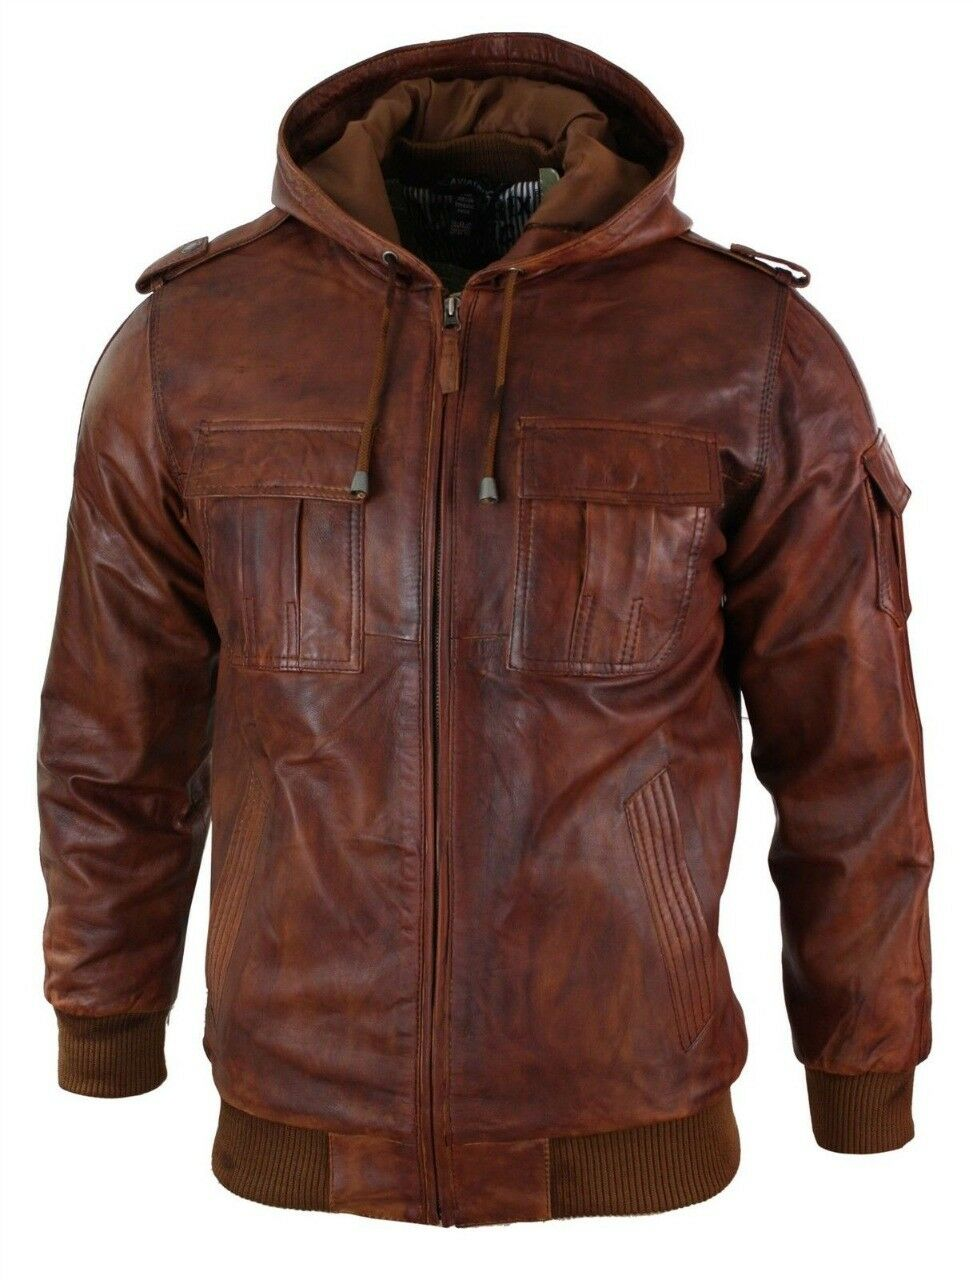 herren Retro Style Zipped Biker jacke Real leder Washed Soft Tan braun Casual